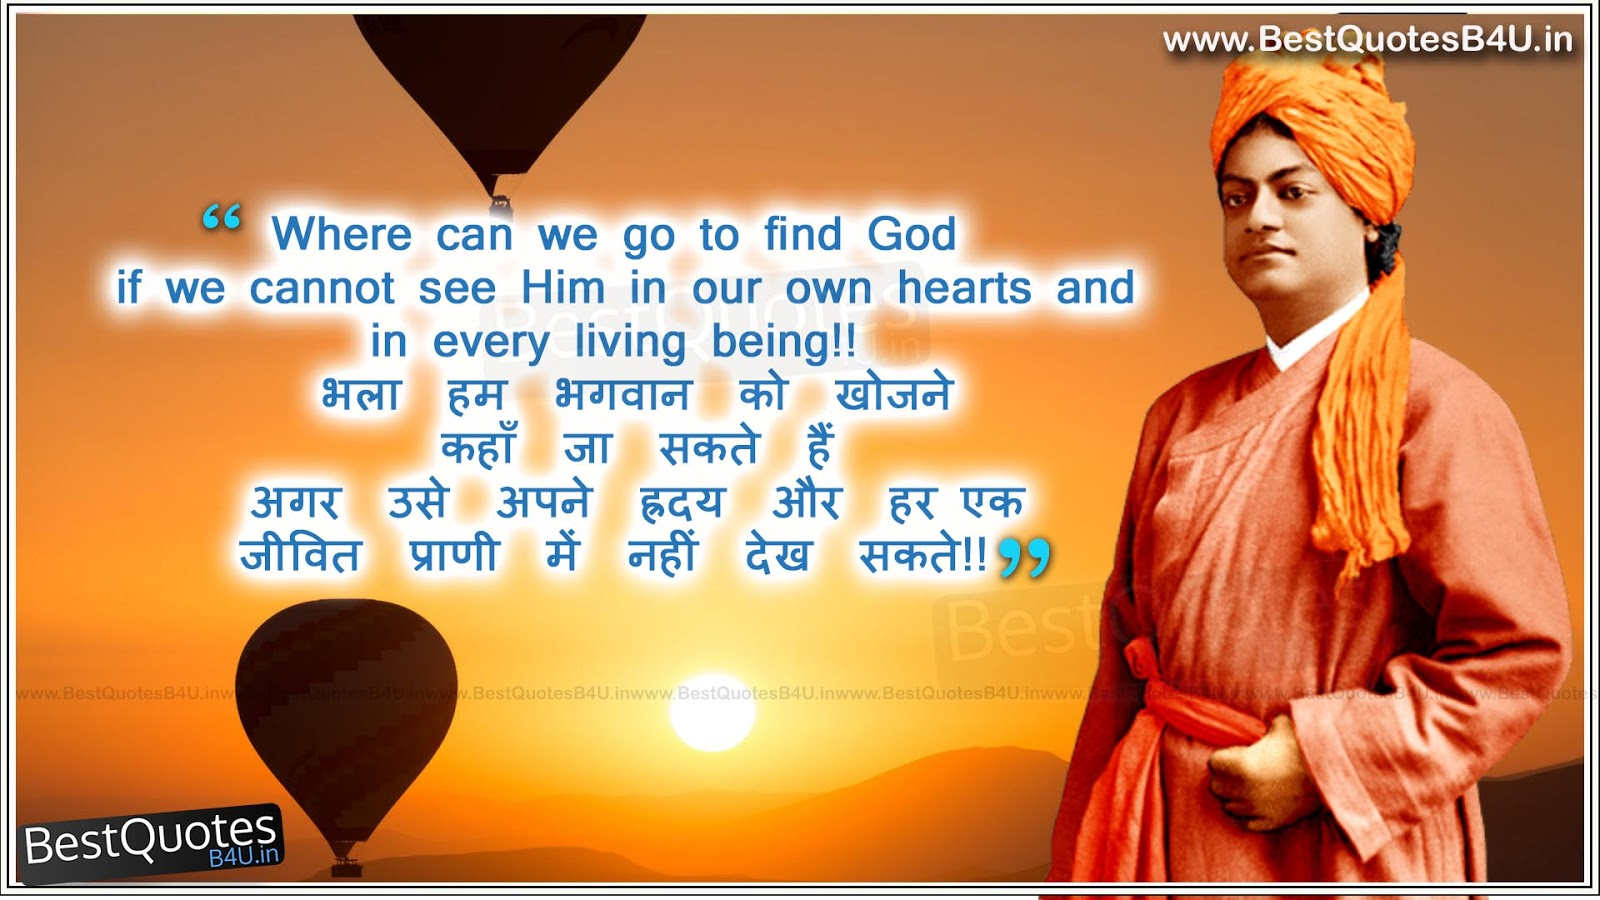 swami vivekananda quotes in english and hindi  swami vivekananda quotes in english and hindi